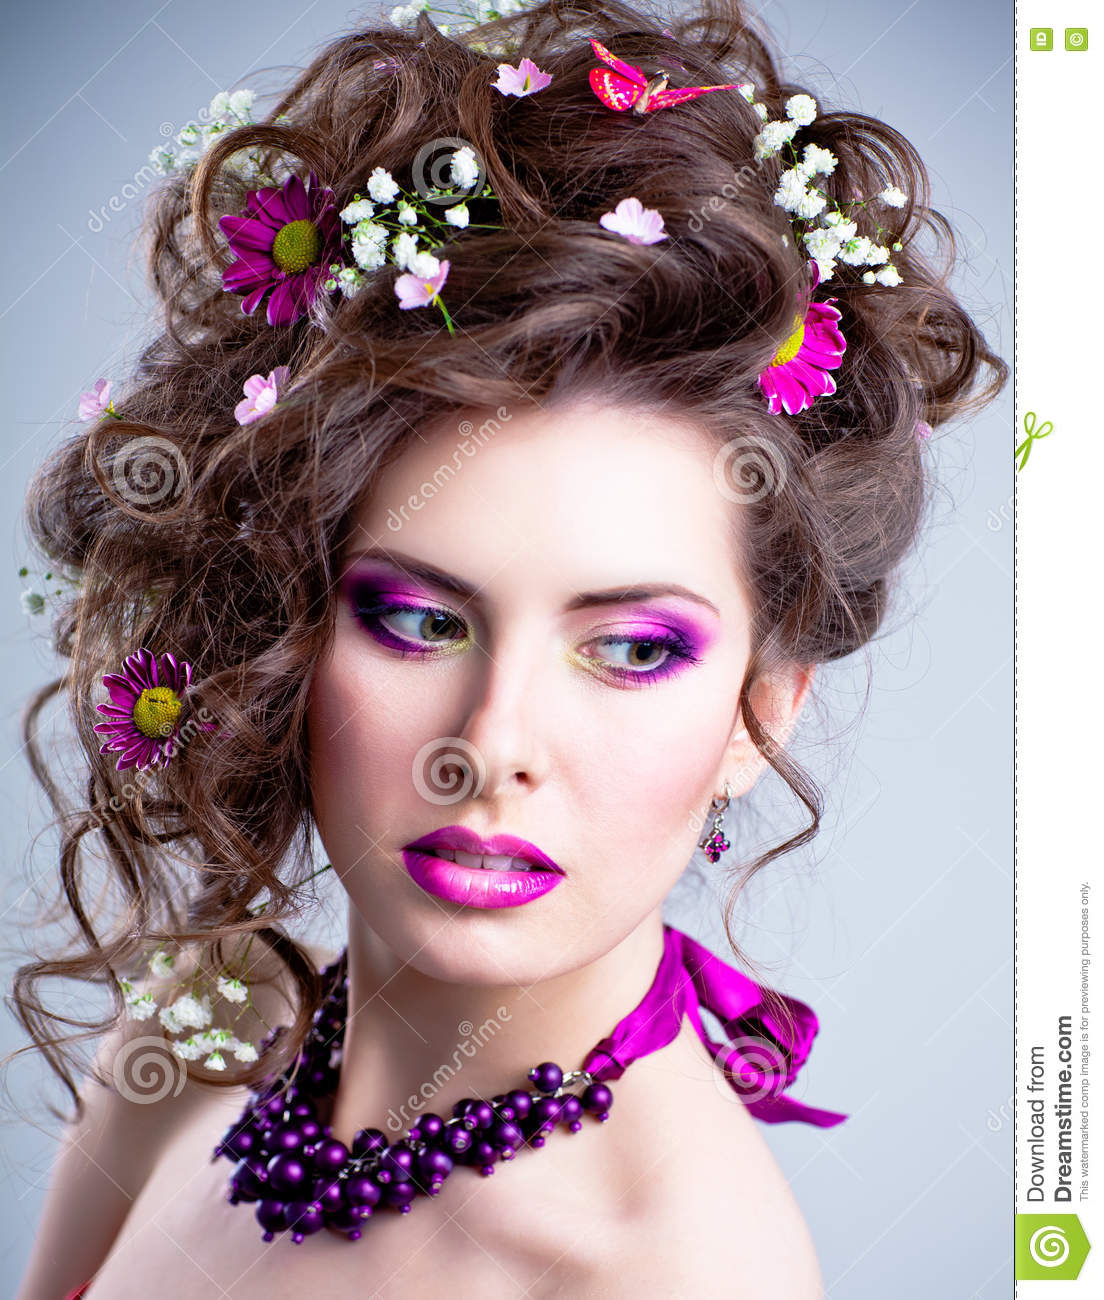 Beautiful Young Girl With Dark Hair And Bright Makeup